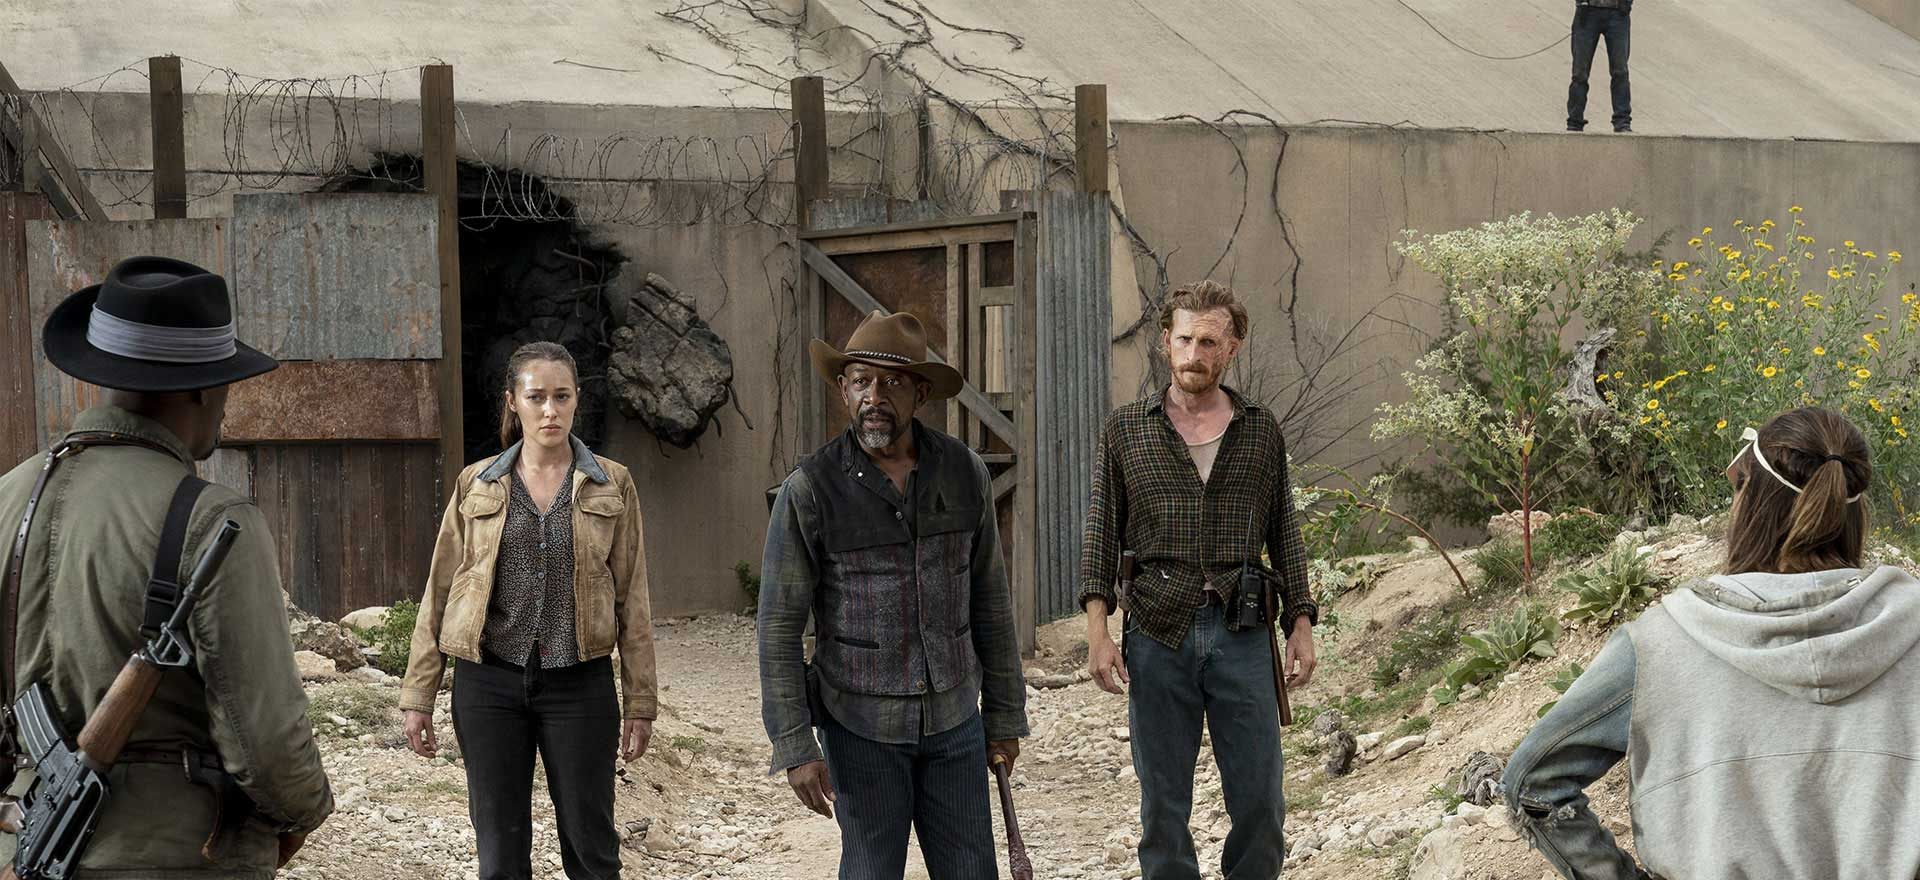 How to Watch the Second Half of Fear the Walking Dead Season 6 and Everything You Need to Know for the New Episodes